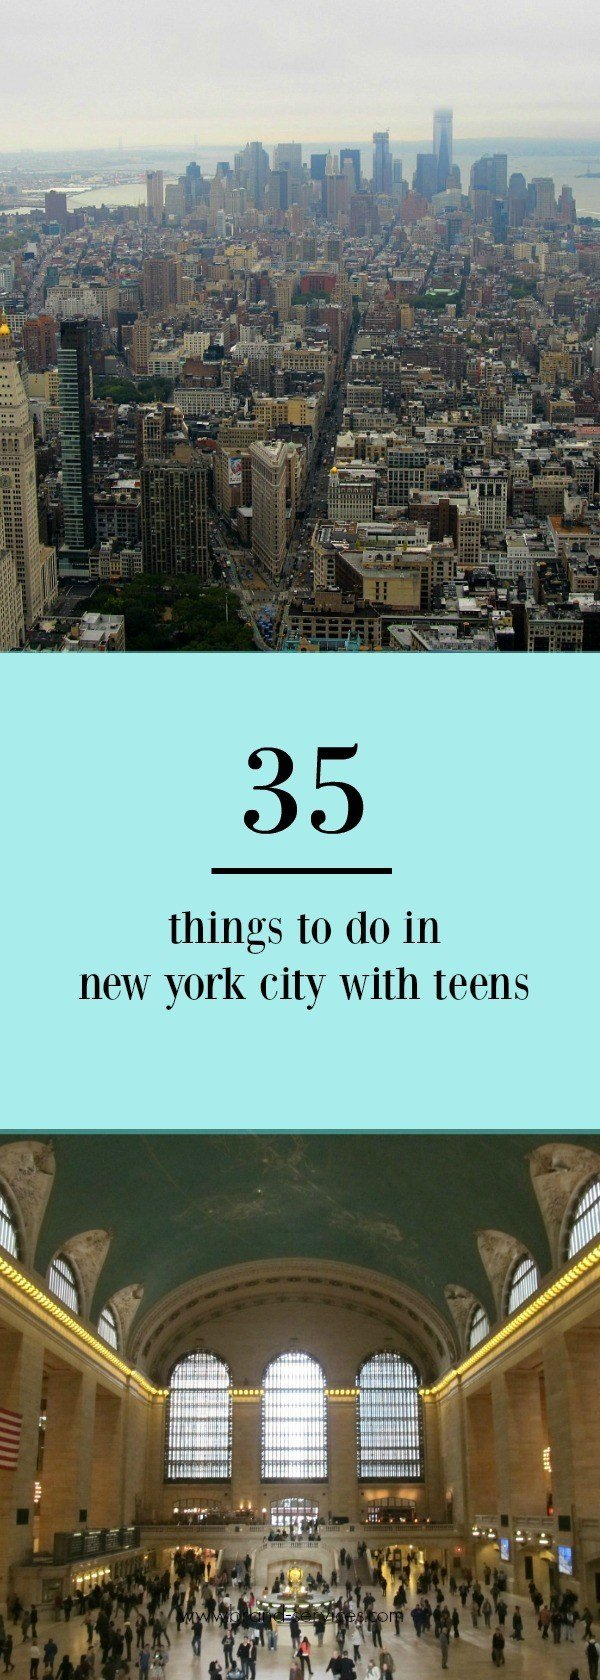 Things to do in new york city with teens for an for Things to see and do in nyc